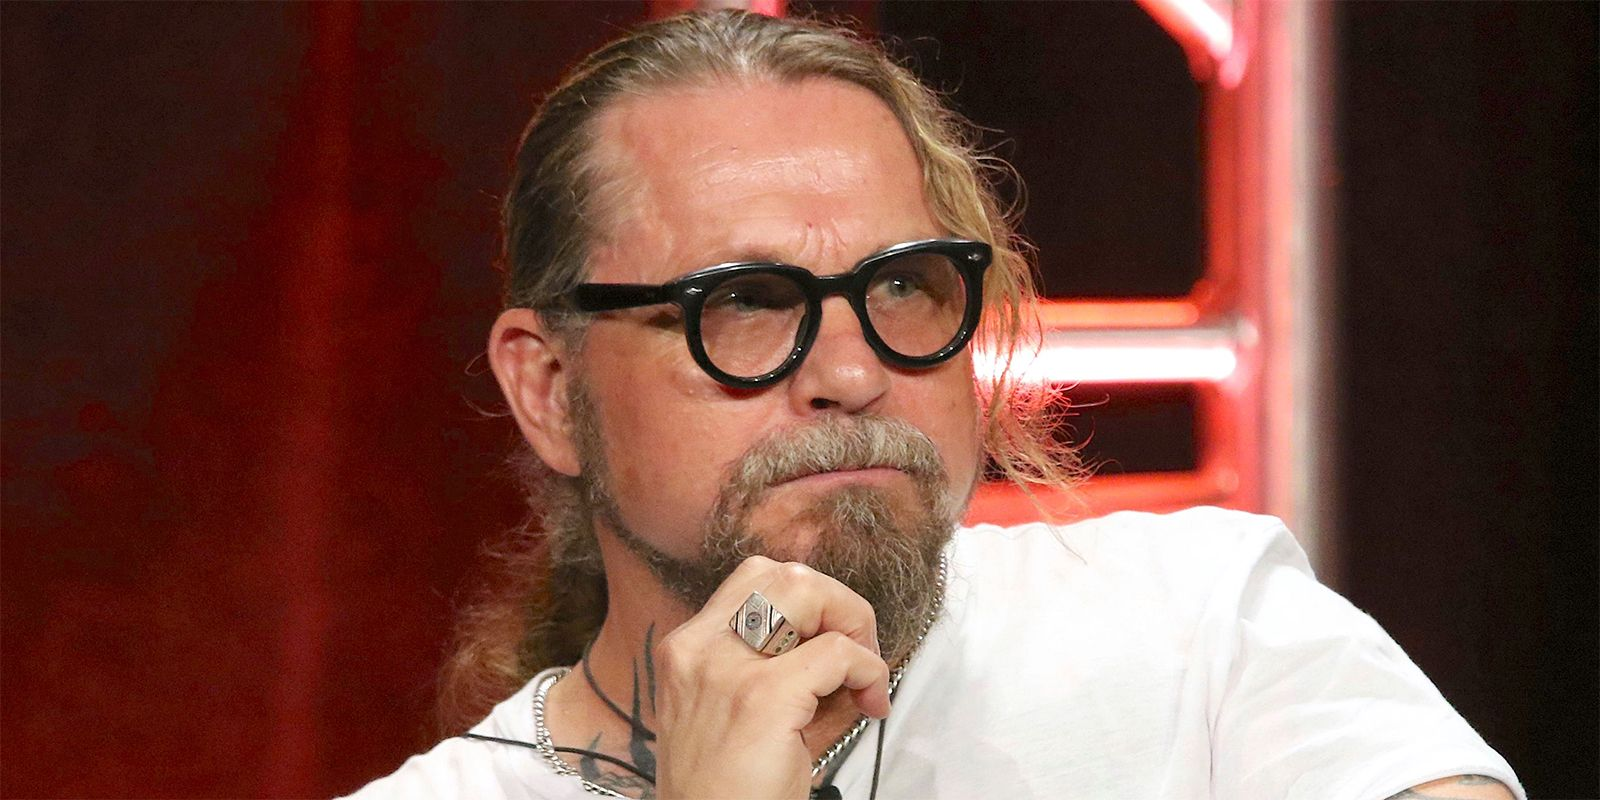 Sons of Anarchy & Mayans M.C. Creator Kurt Sutter Fired By FX